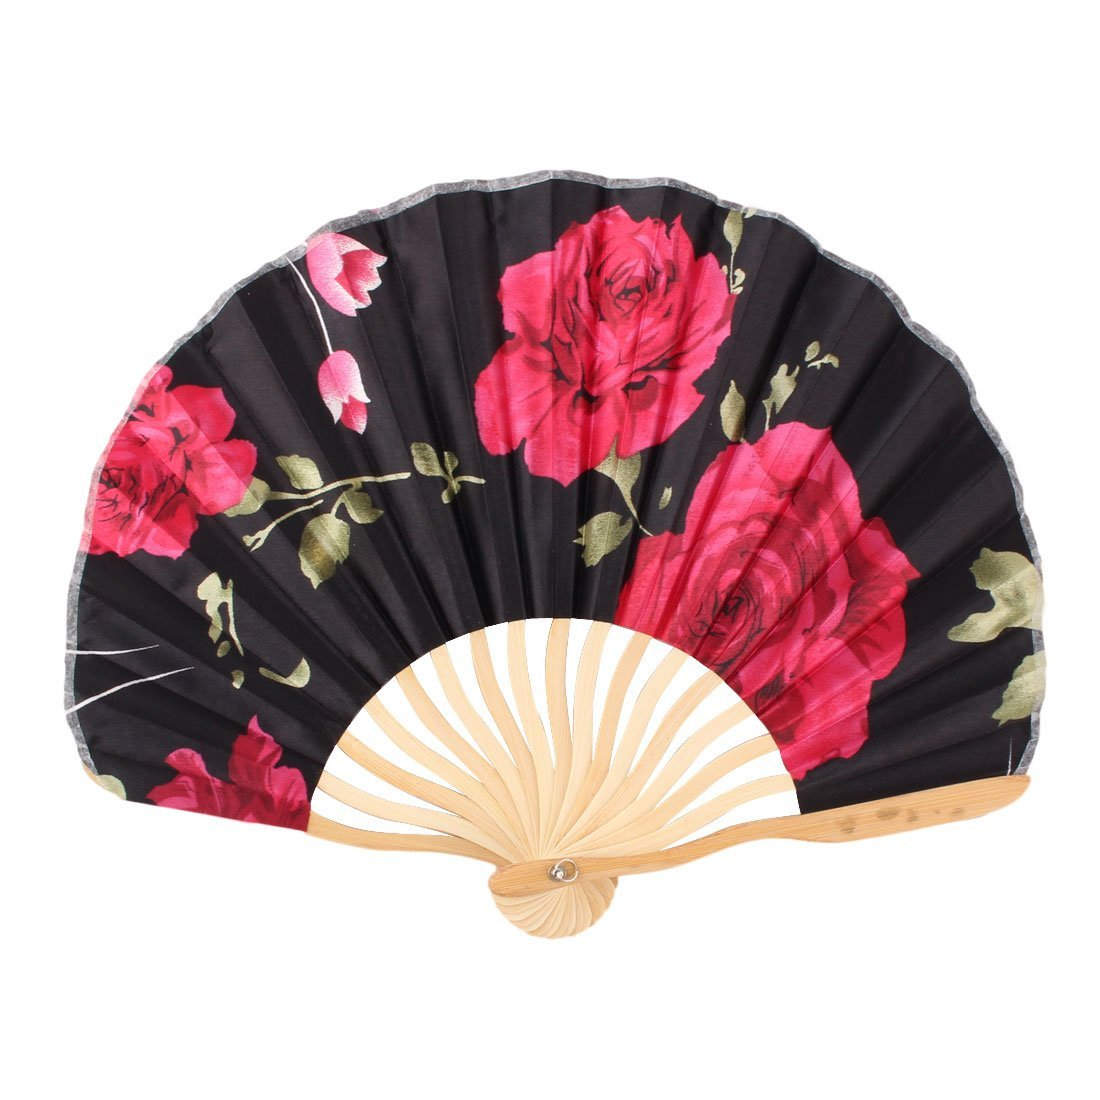 uxcell Rose Printed Bamboo Frame Dancing Wedding Party Summer Hand Folding Cooling Fan